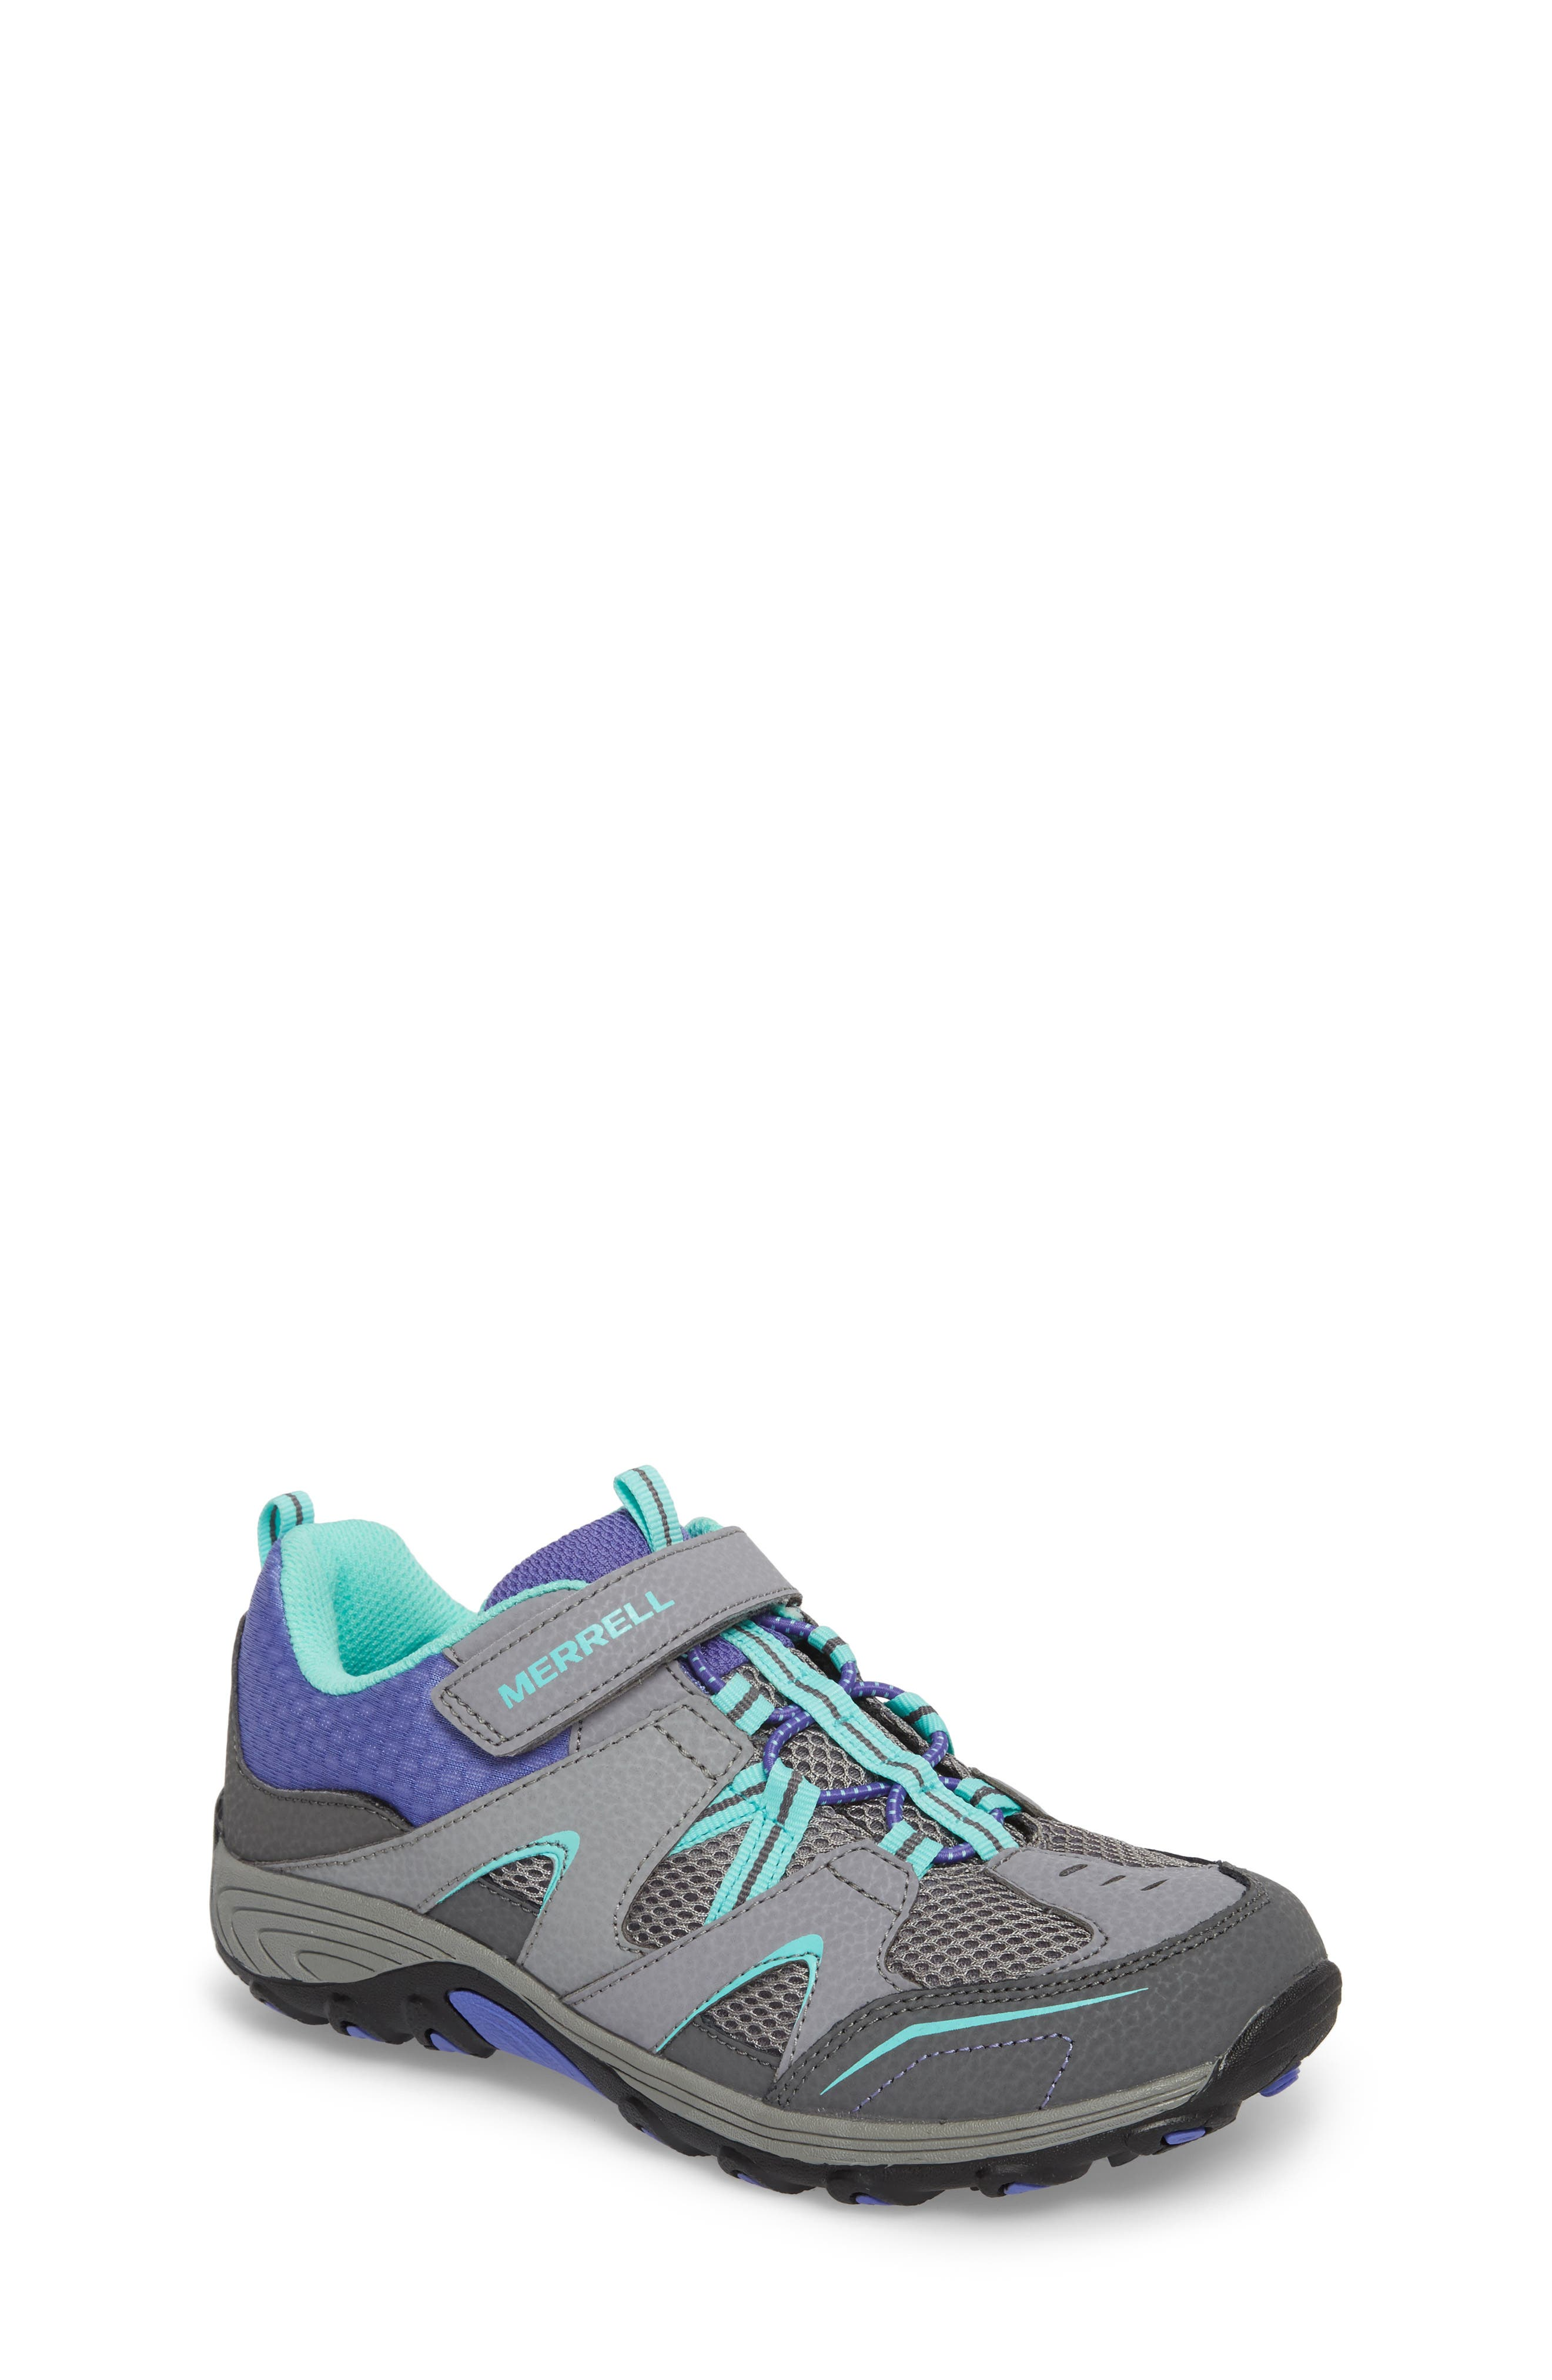 Trail Chaser Sneaker,                             Main thumbnail 1, color,                             GREY/ MULTI